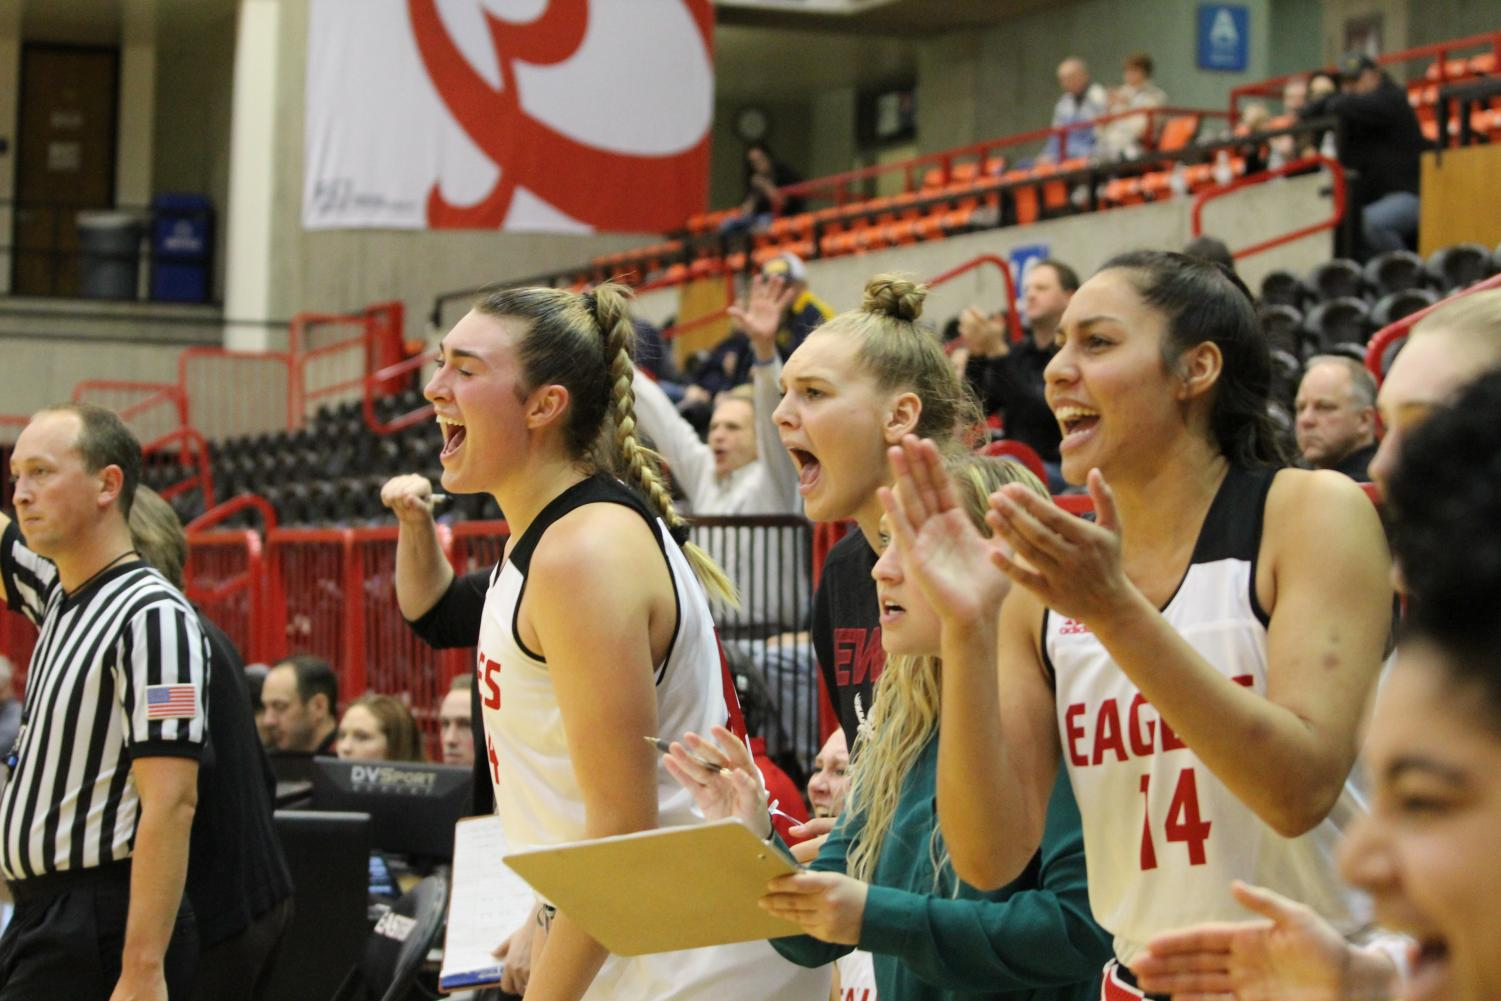 Bella Cravens and Leya DePriest cheer on the team late in the game against Northern Colorado on Monday. The Bears are yet to lose in Big Sky play this year.